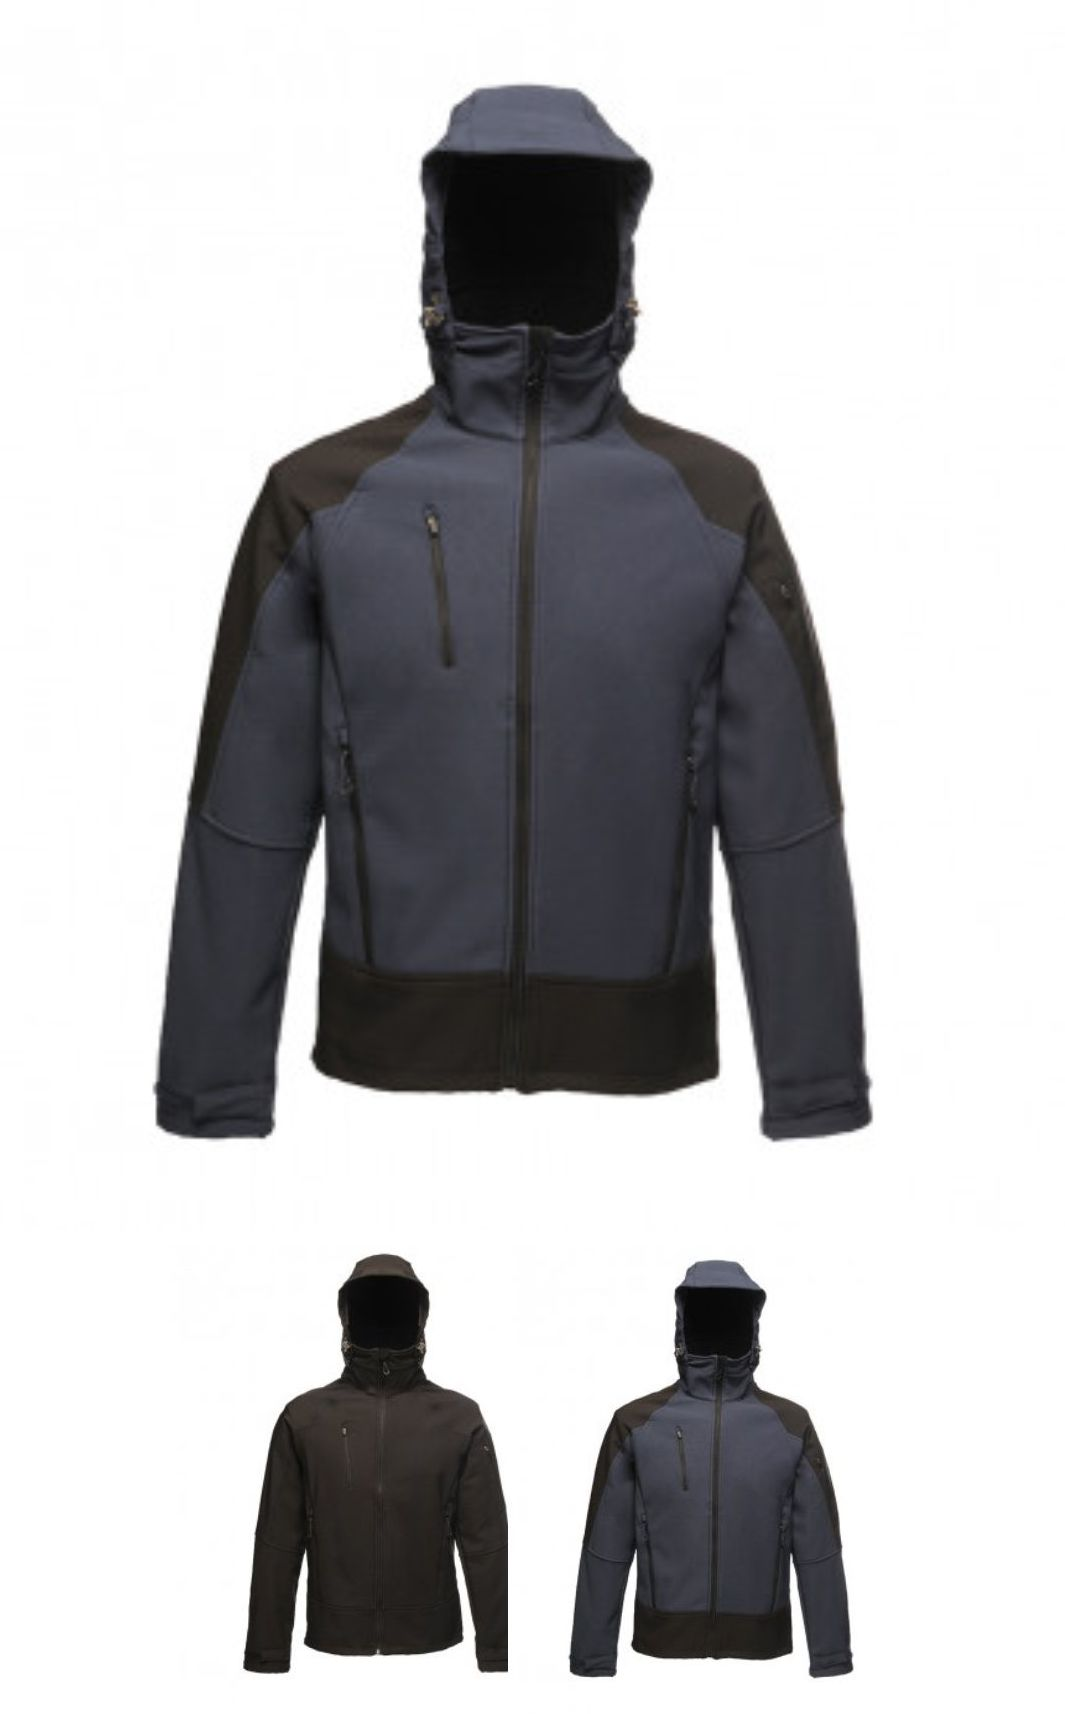 RG355 Regatta X-Pro Powergrid Hooded Soft Shell Jacket